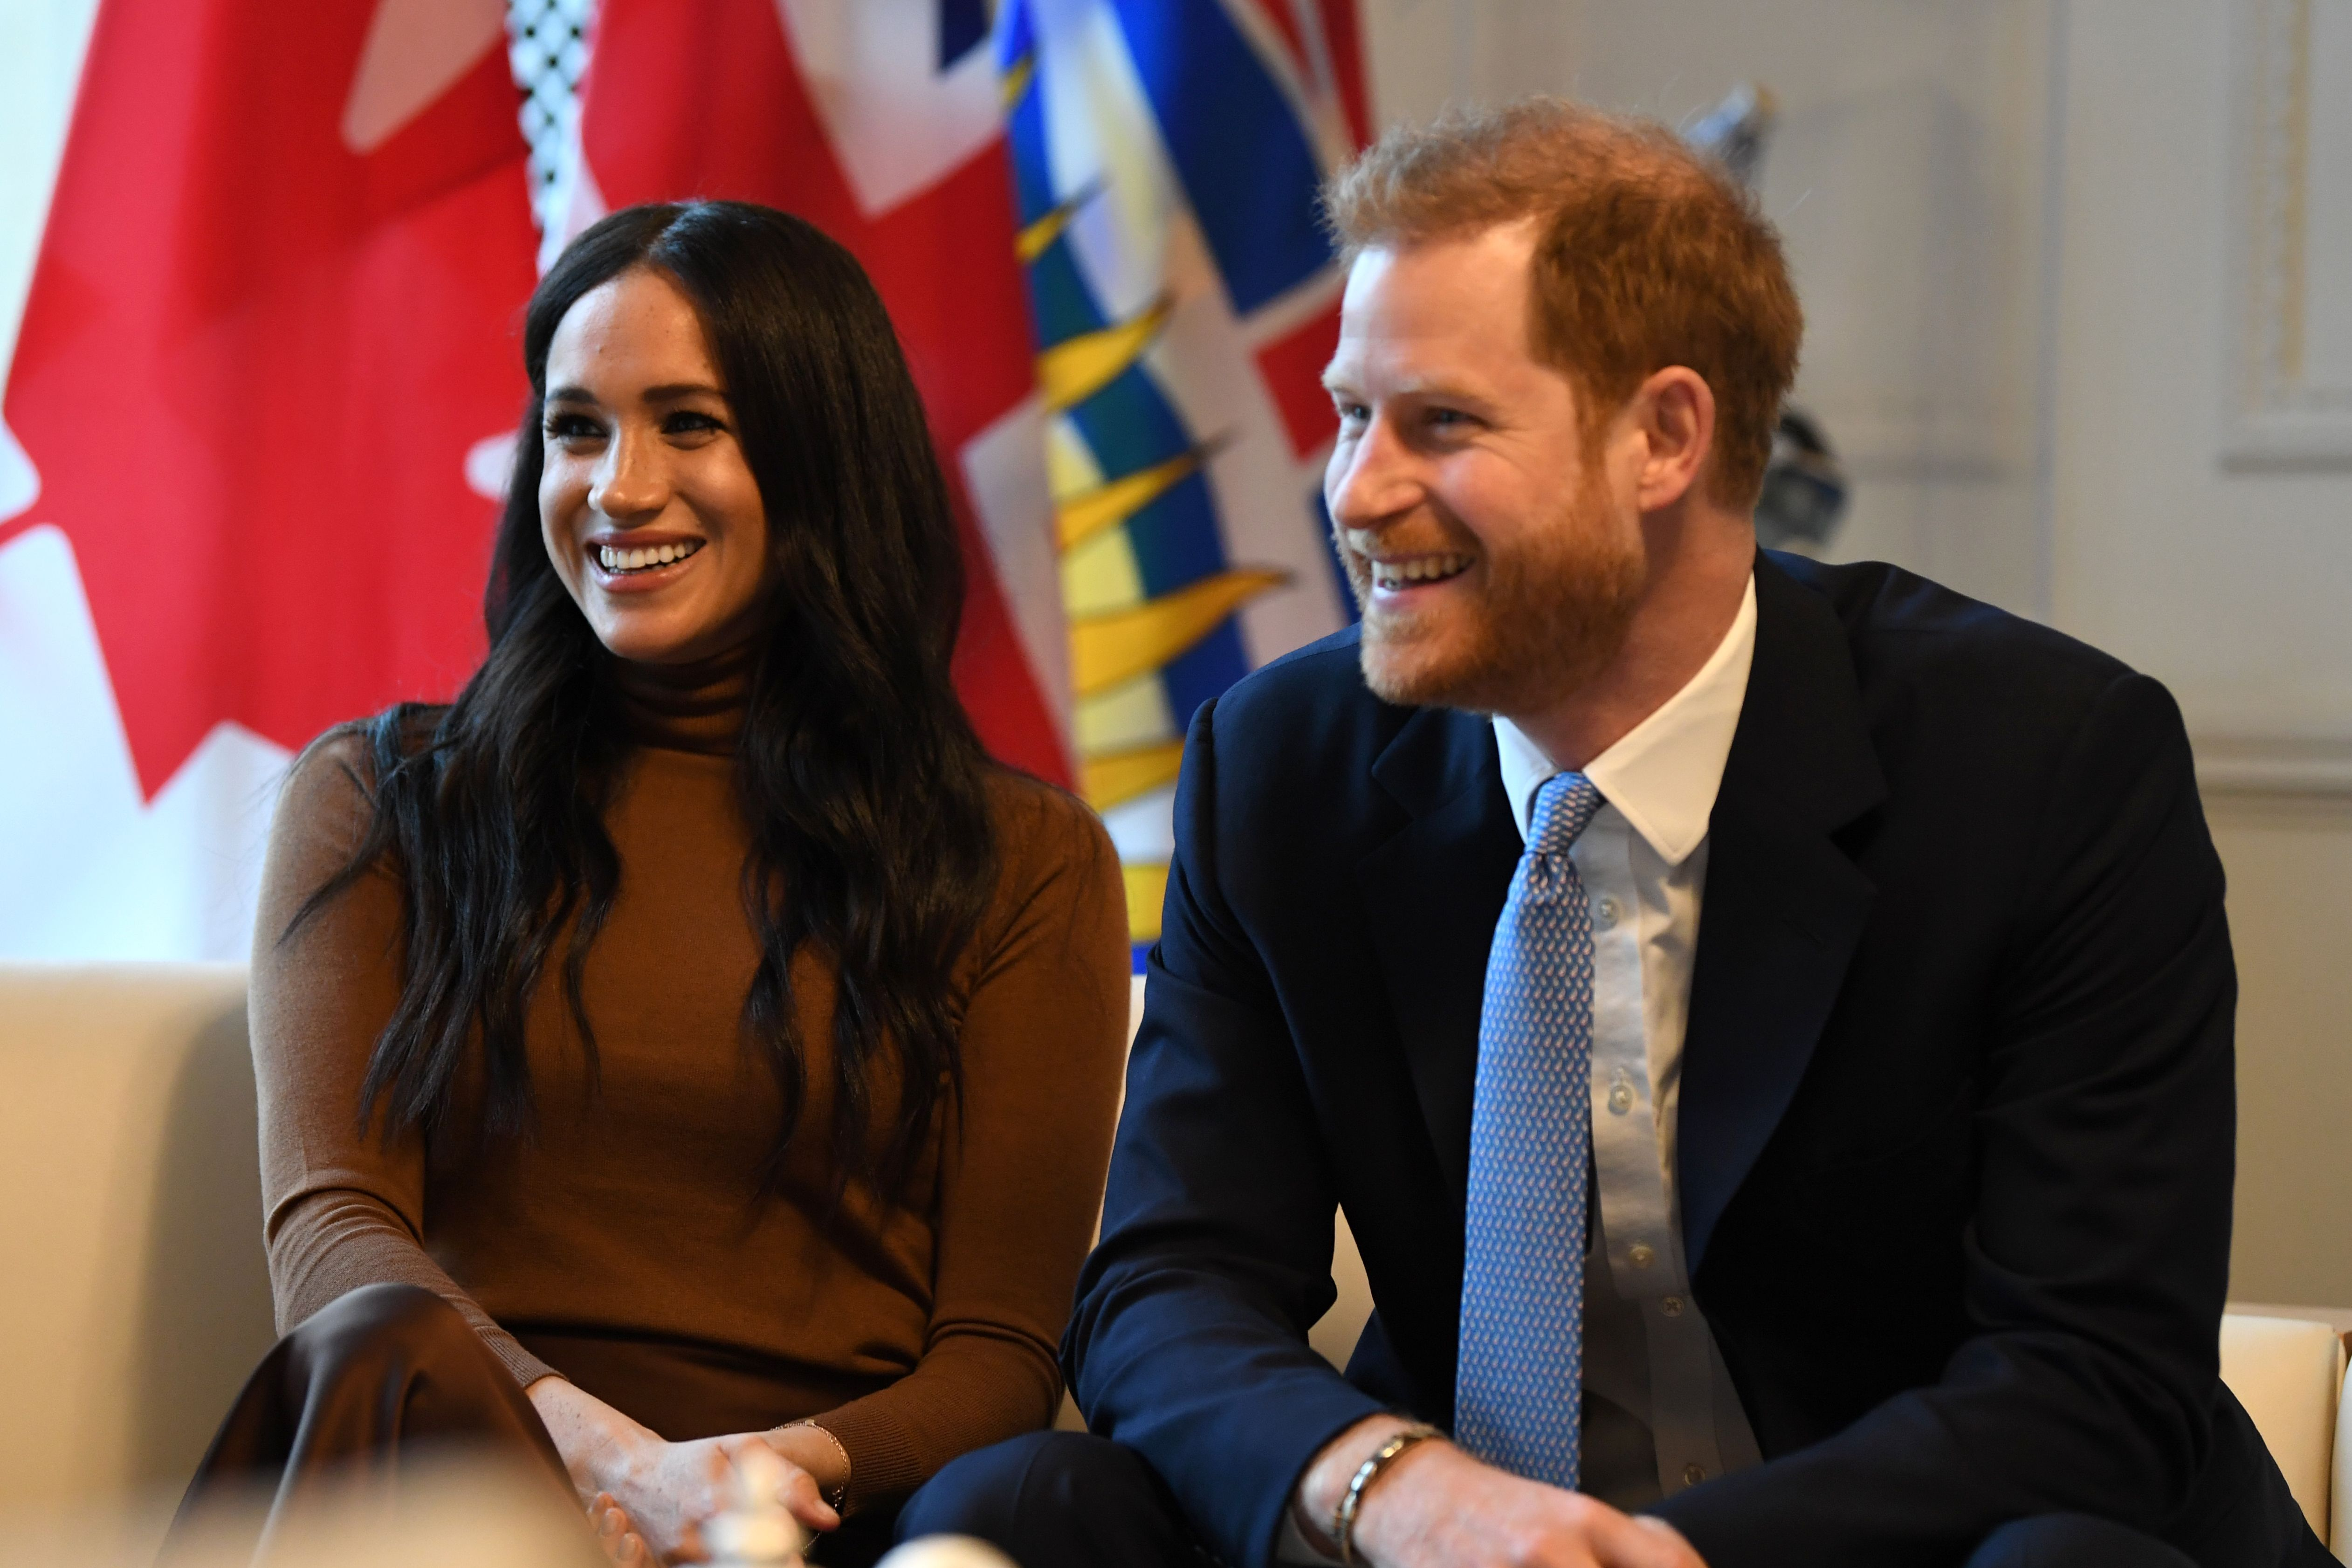 madonna offers prince harry meghan markle her new york apartment observer https observer com 2020 02 prince harry meghan markle new york apartment madonna home offer